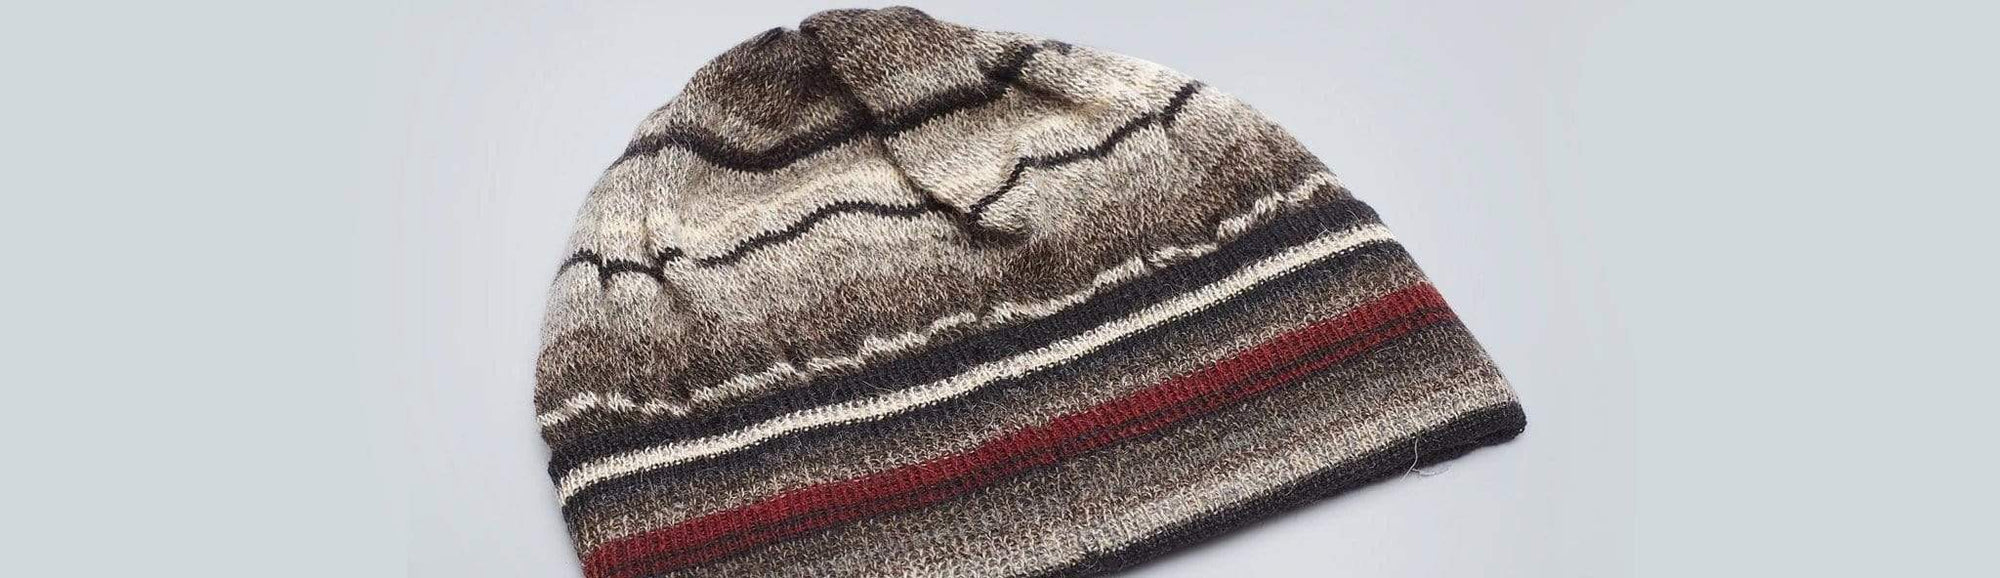 Men's Alpaca Hats and Accessories